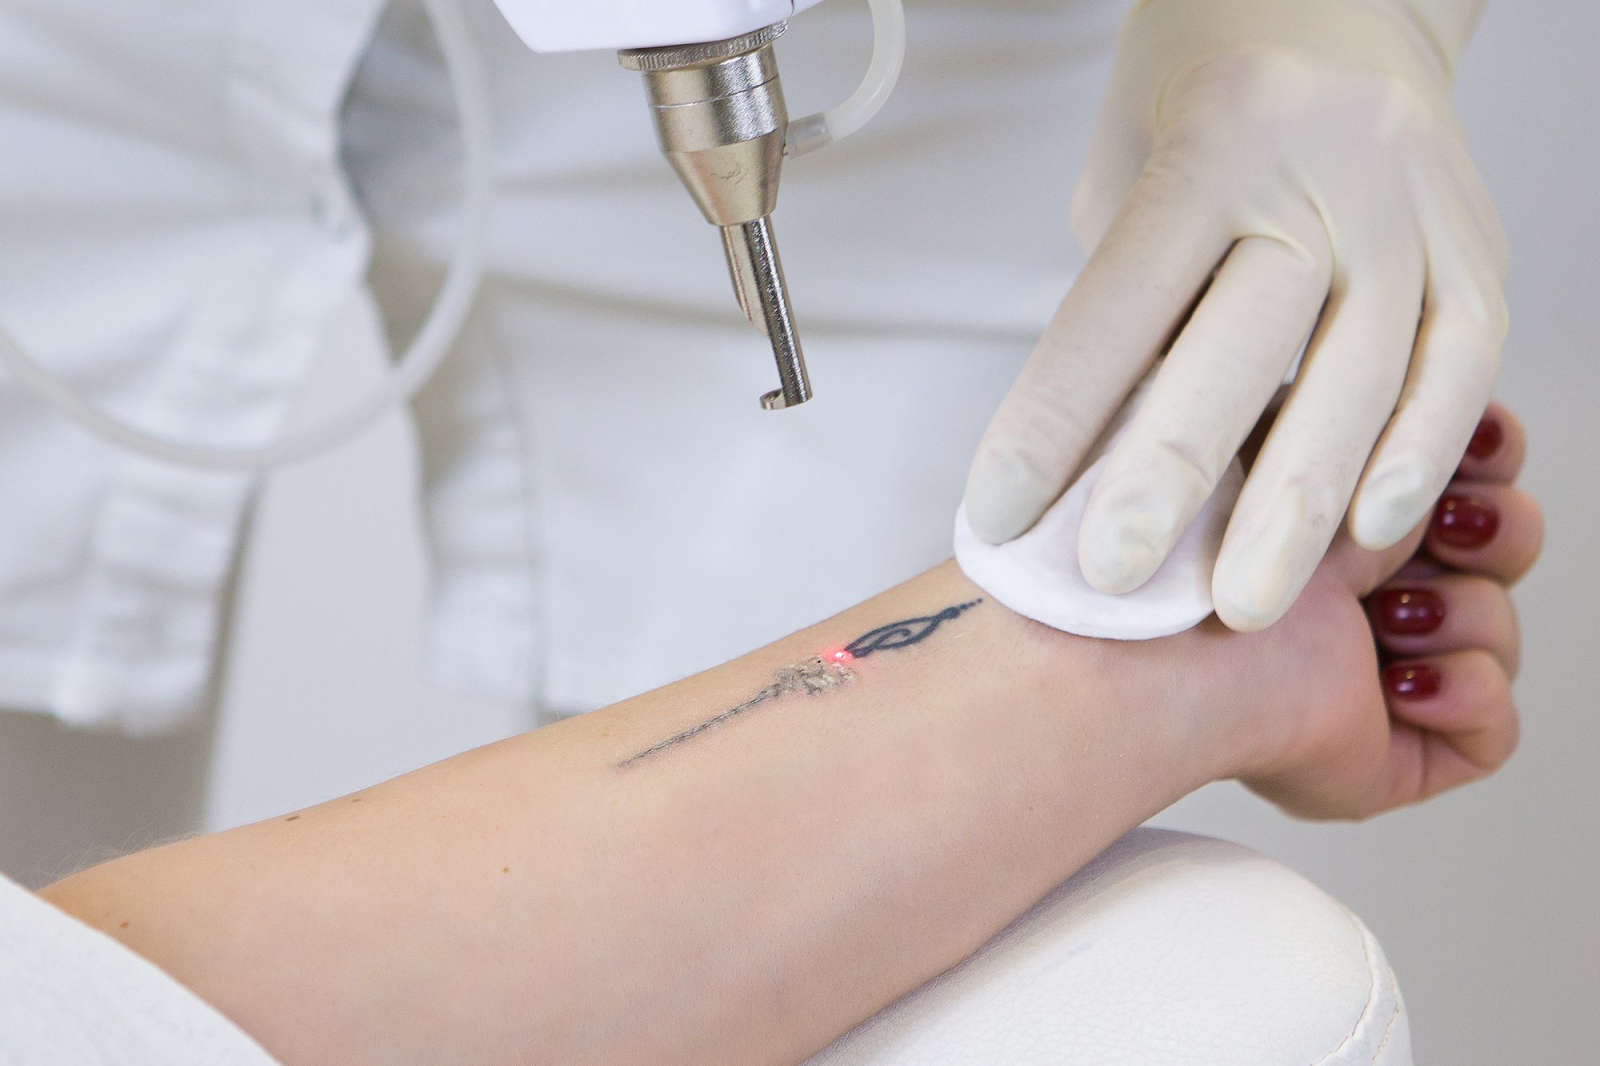 Zeltiq Coolsculpting Is An Alternative To Liposuction